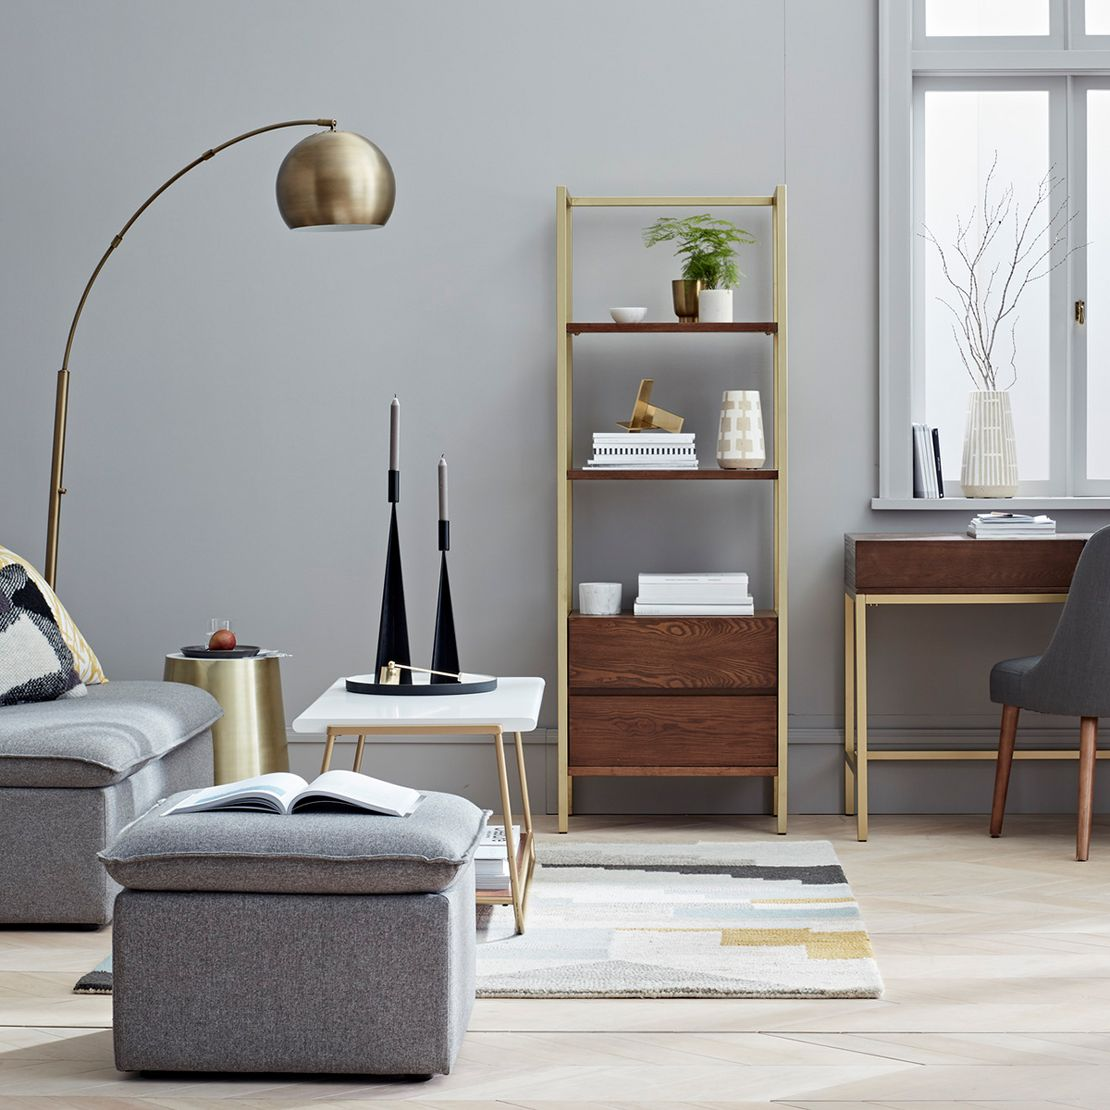 Home Furnishing Stores Online: Home : Furnishings & Decor : Target